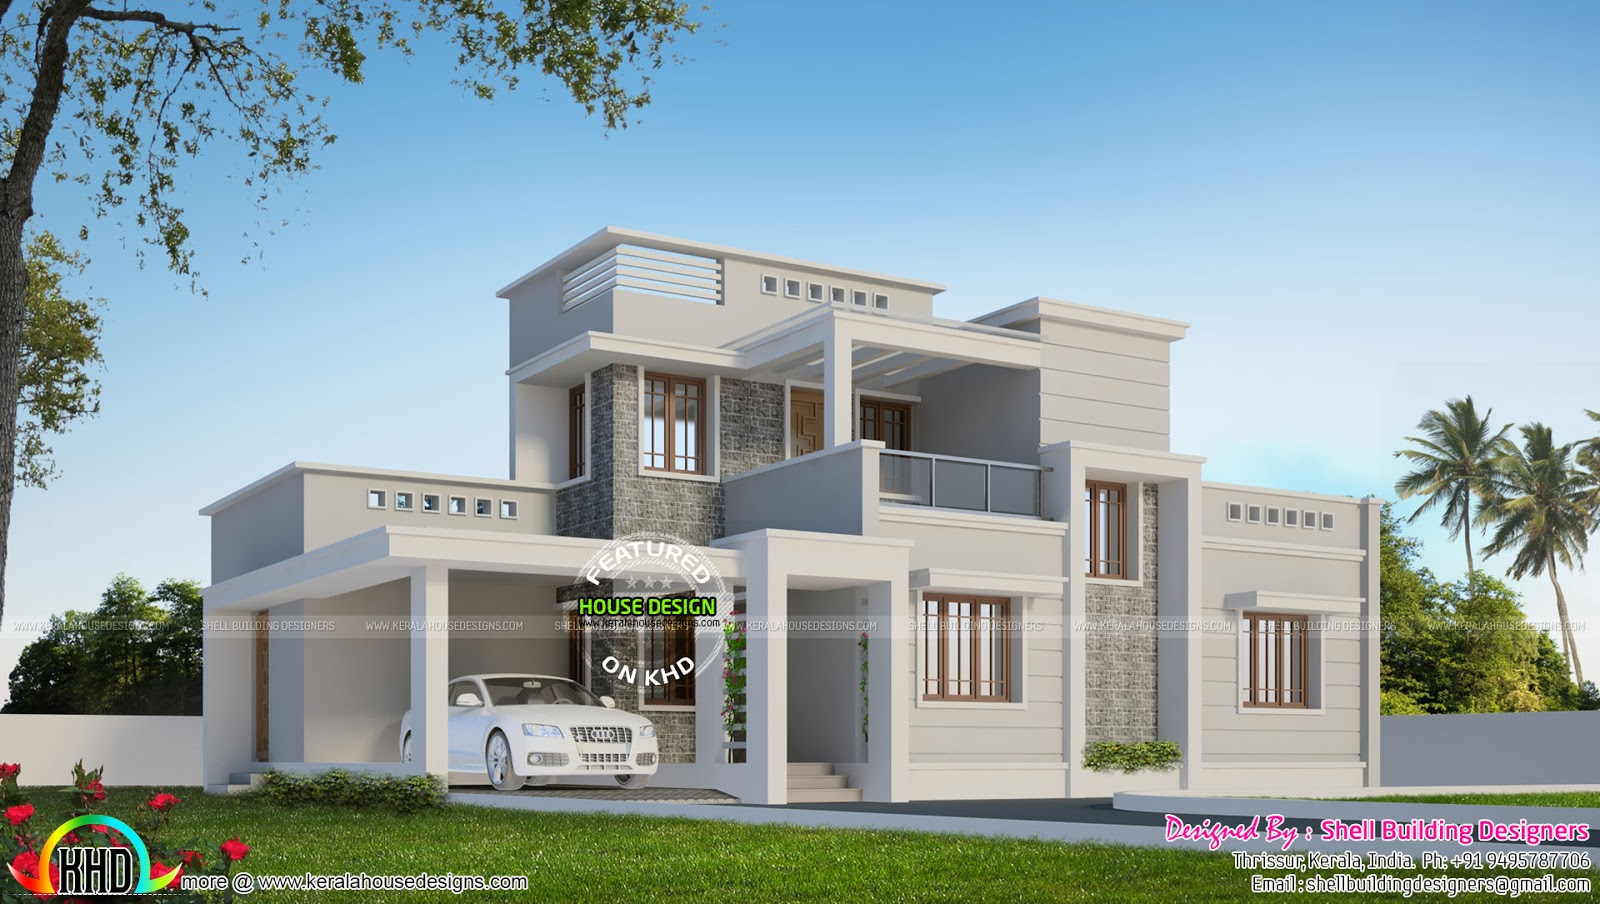 Beautiful box type modern home kerala home design and for Modern box house design